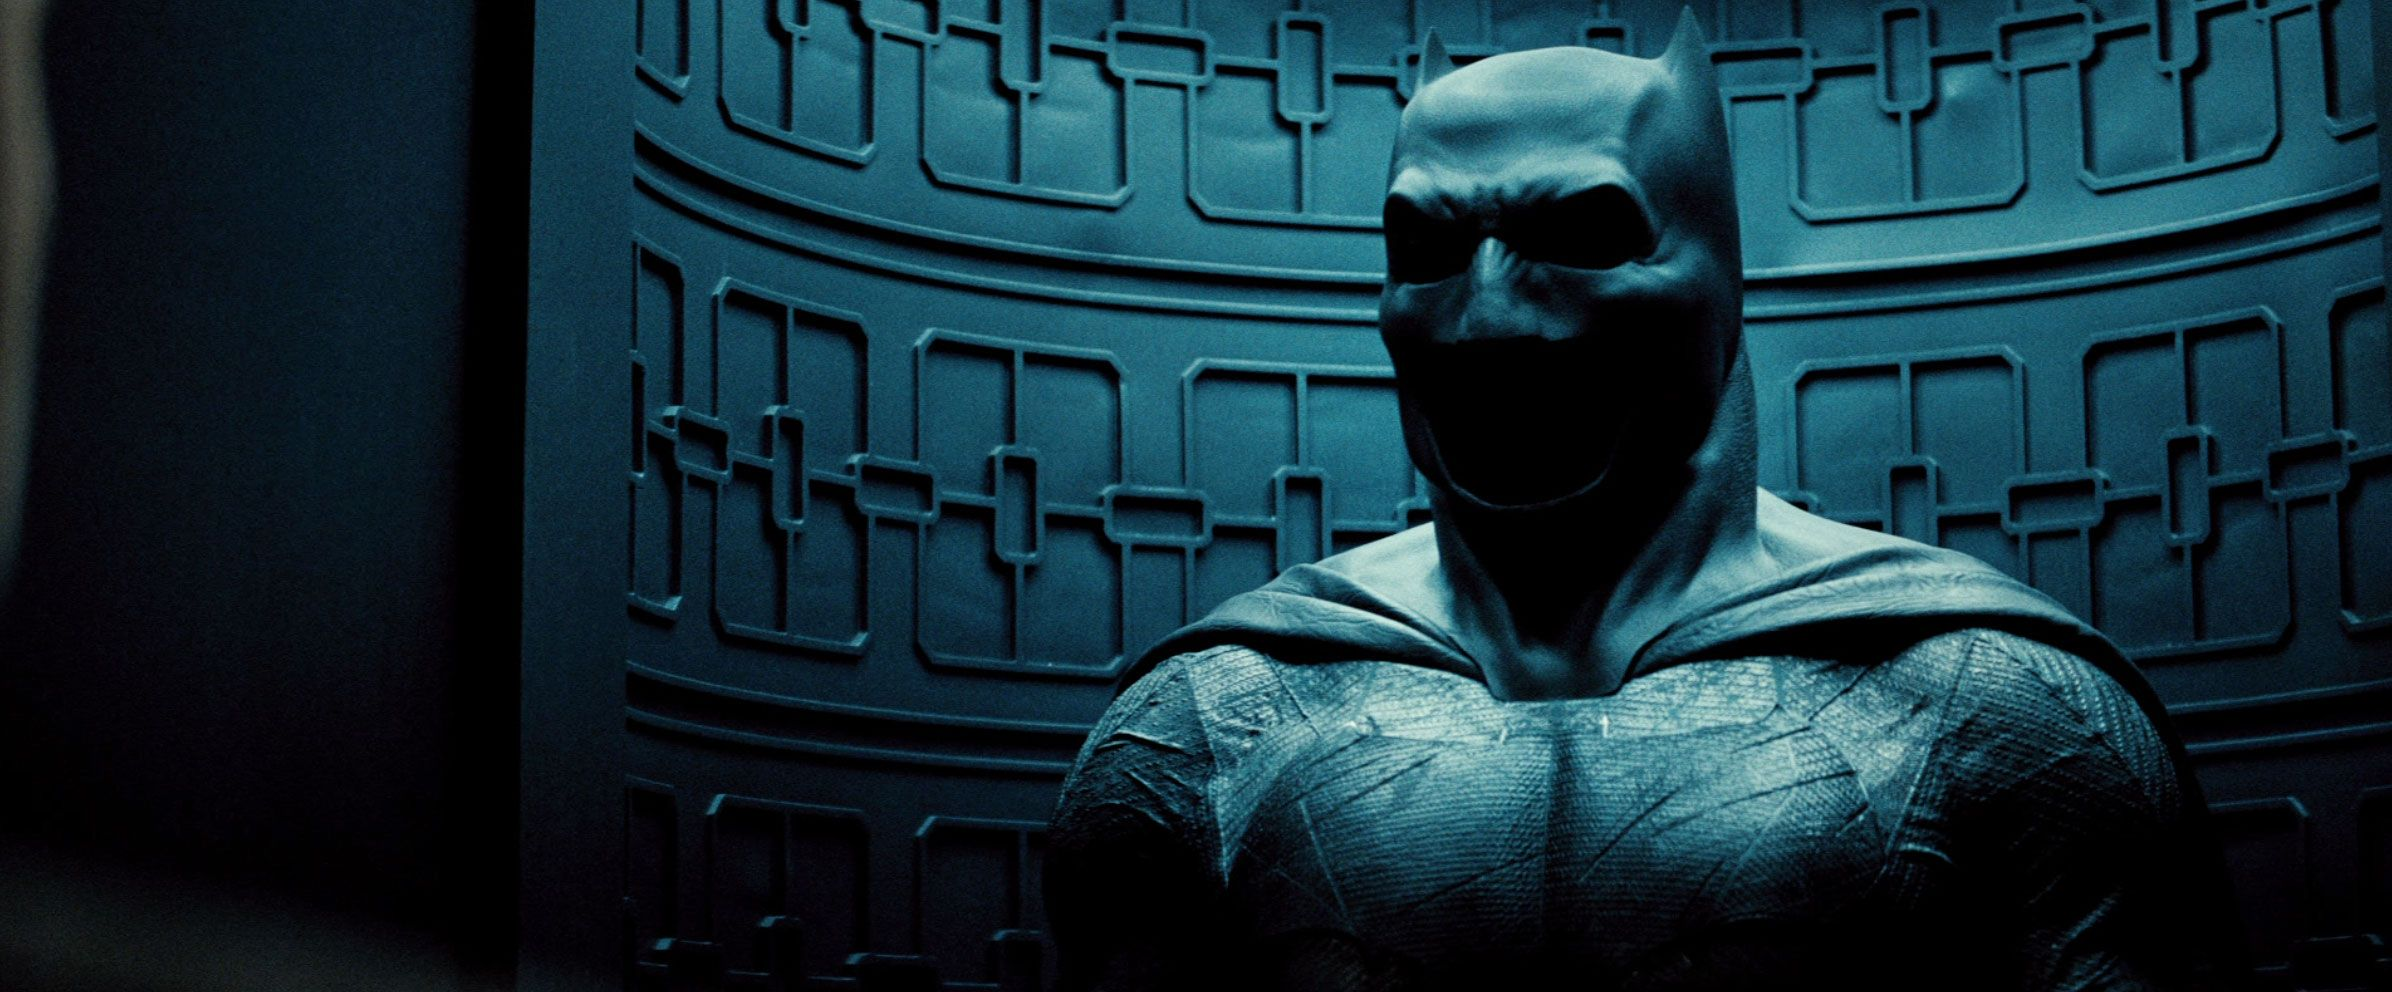 Batman V Superman Pictures From Trailer Feature Ben Affleck As